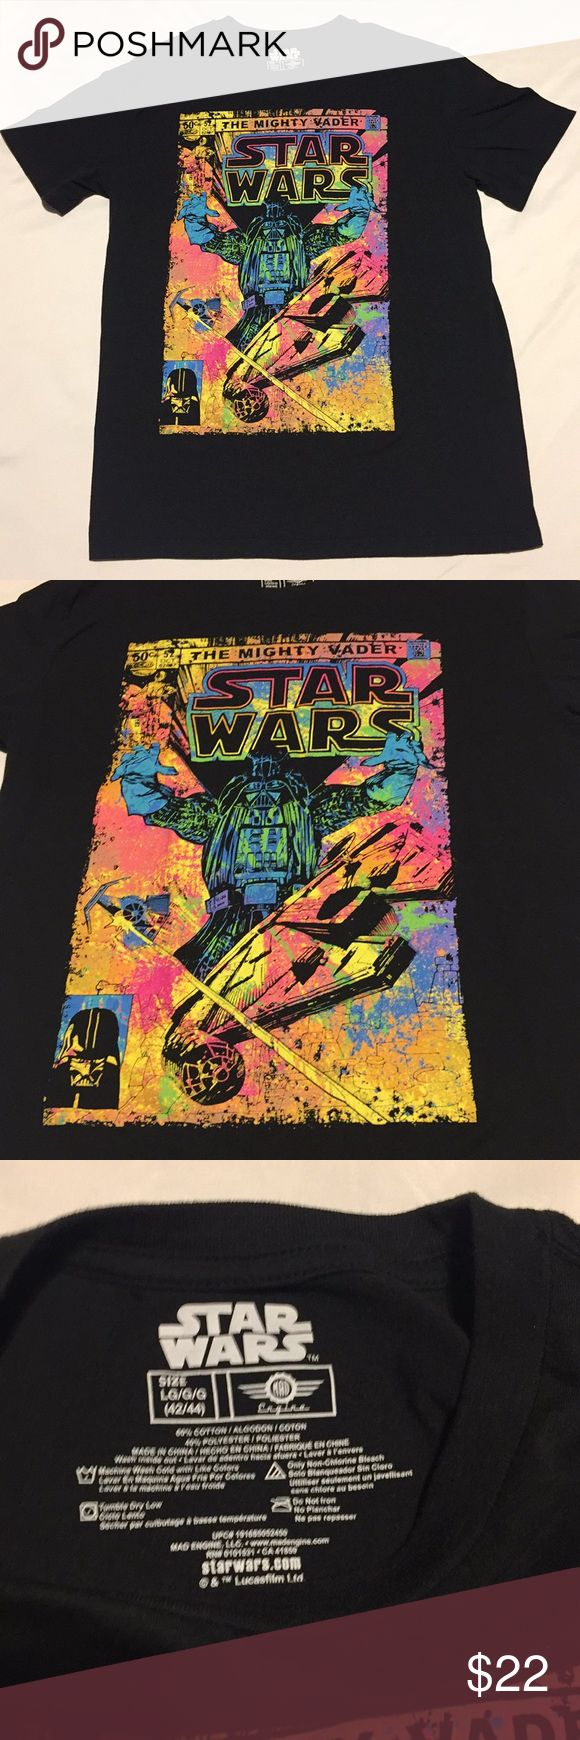 Unisex STAR WARS T-shirt EUC This shirt is awesome! Black with lots of neon color. The image has no signs of fading. Neither does the shirt...back is plain black. It has a fun vintage feel and a must for any Star Wars fan. Tag is sized xl however I believe it can fit smaller sizes. See photo measurements. Unisex: Ladies wear w leggings or your favorite jeans. Check out the pictures ....The Mighty Darth Vader! Star Wars Shirts Tees - Short Sleeve